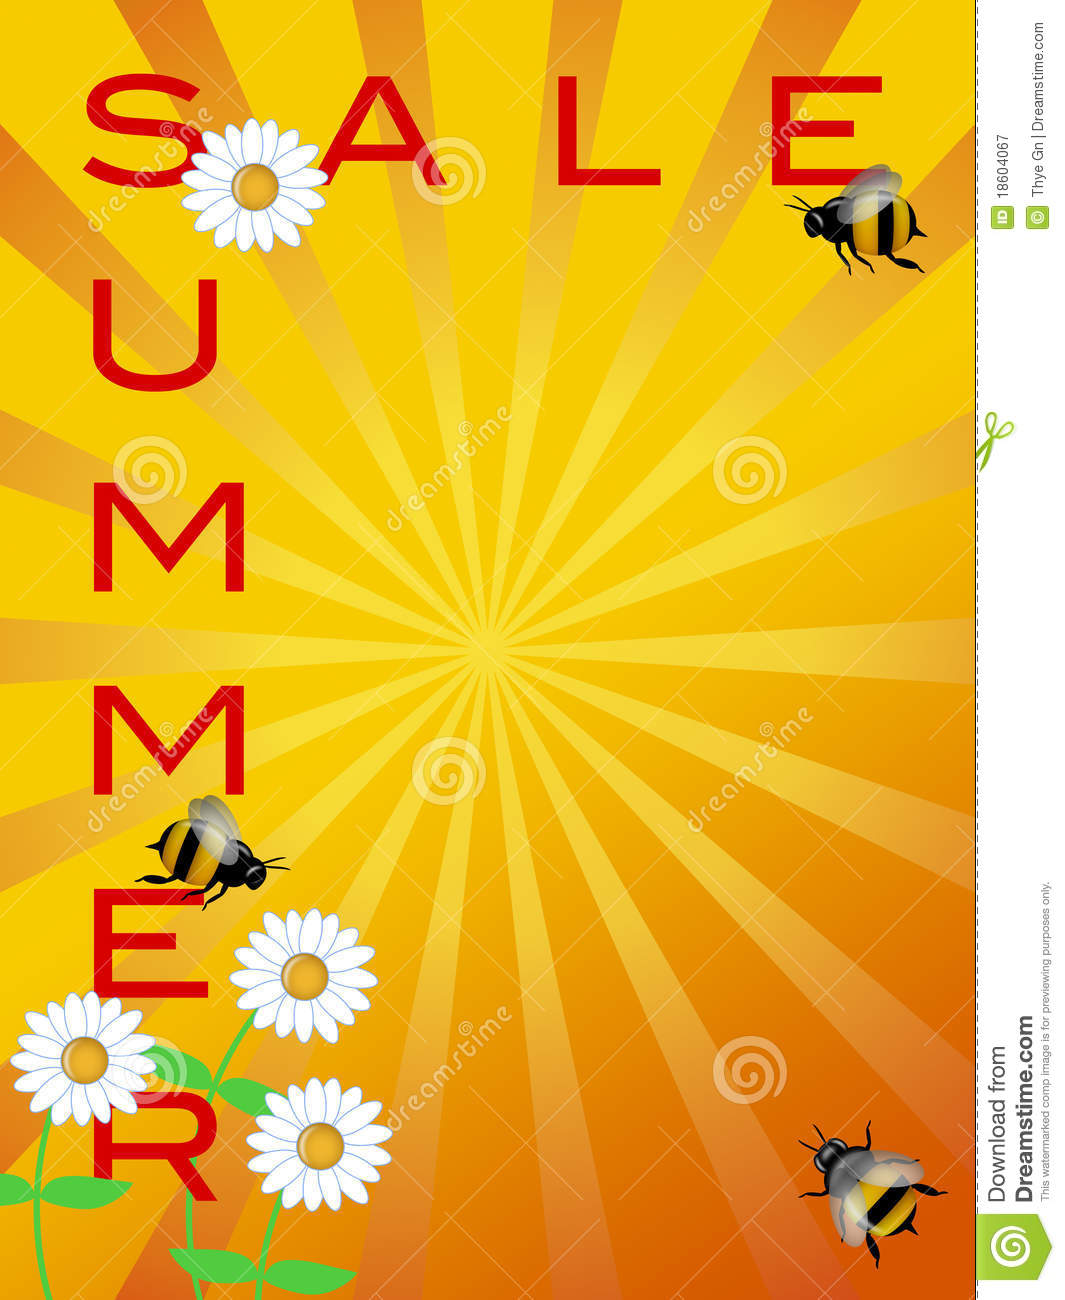 summer sale sign daisies flowers and bumble bees stock illustration